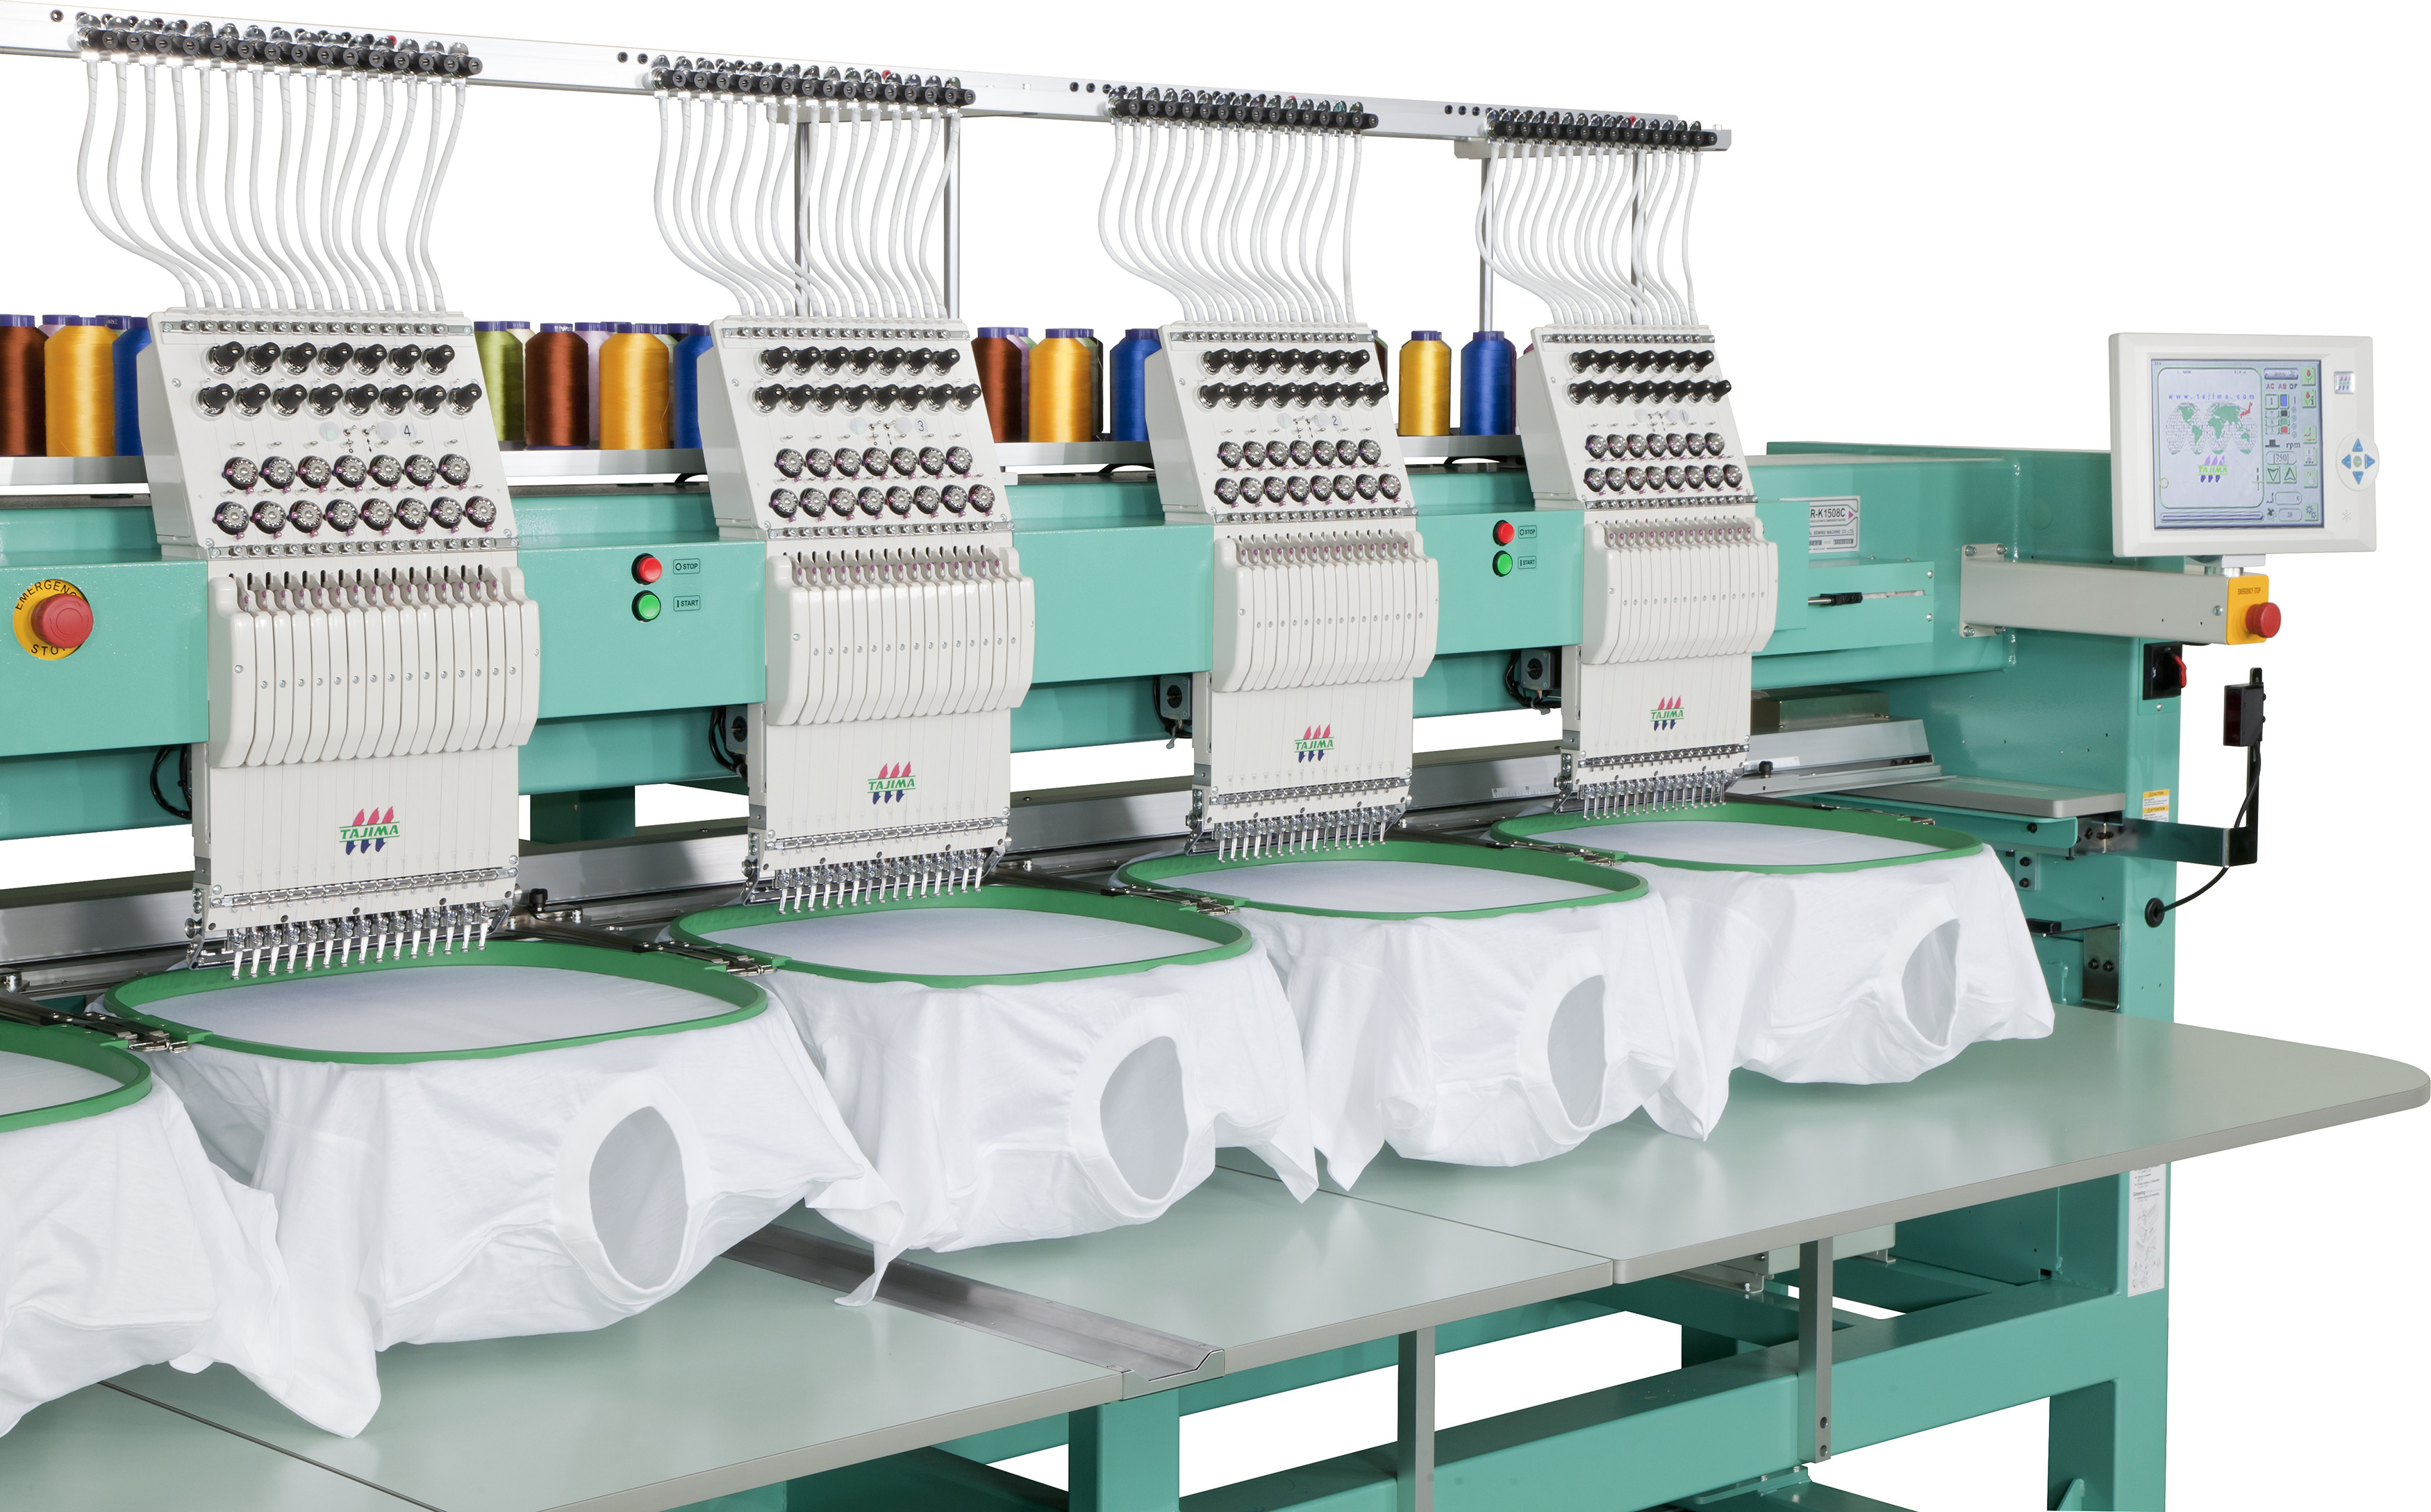 Embroidery Machine Beautiful New Tajima Tmar Kc Takes Embroidery to the Next Level Of Innovative 43 Pictures Embroidery Machine